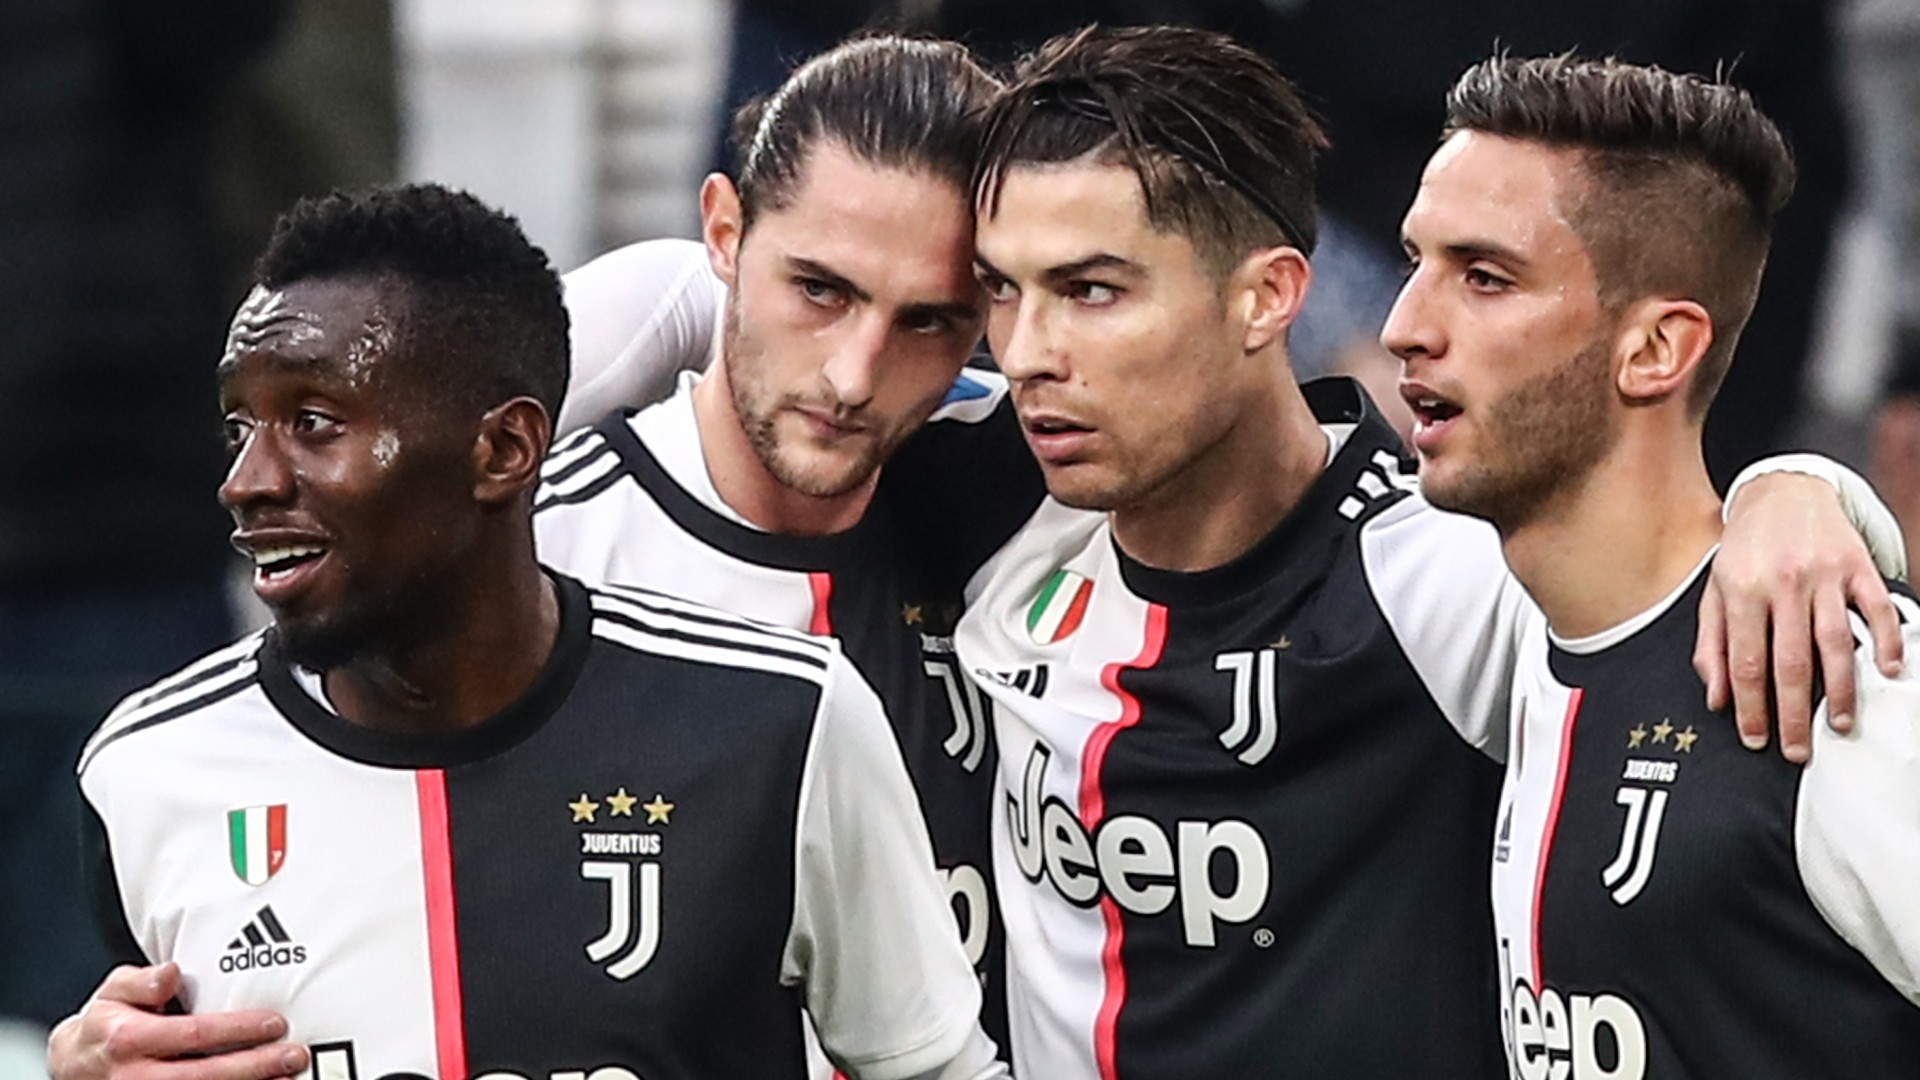 Ronaldo & his Juventus team-mates agree to salary reductions worth €90m during coronavirus crisis